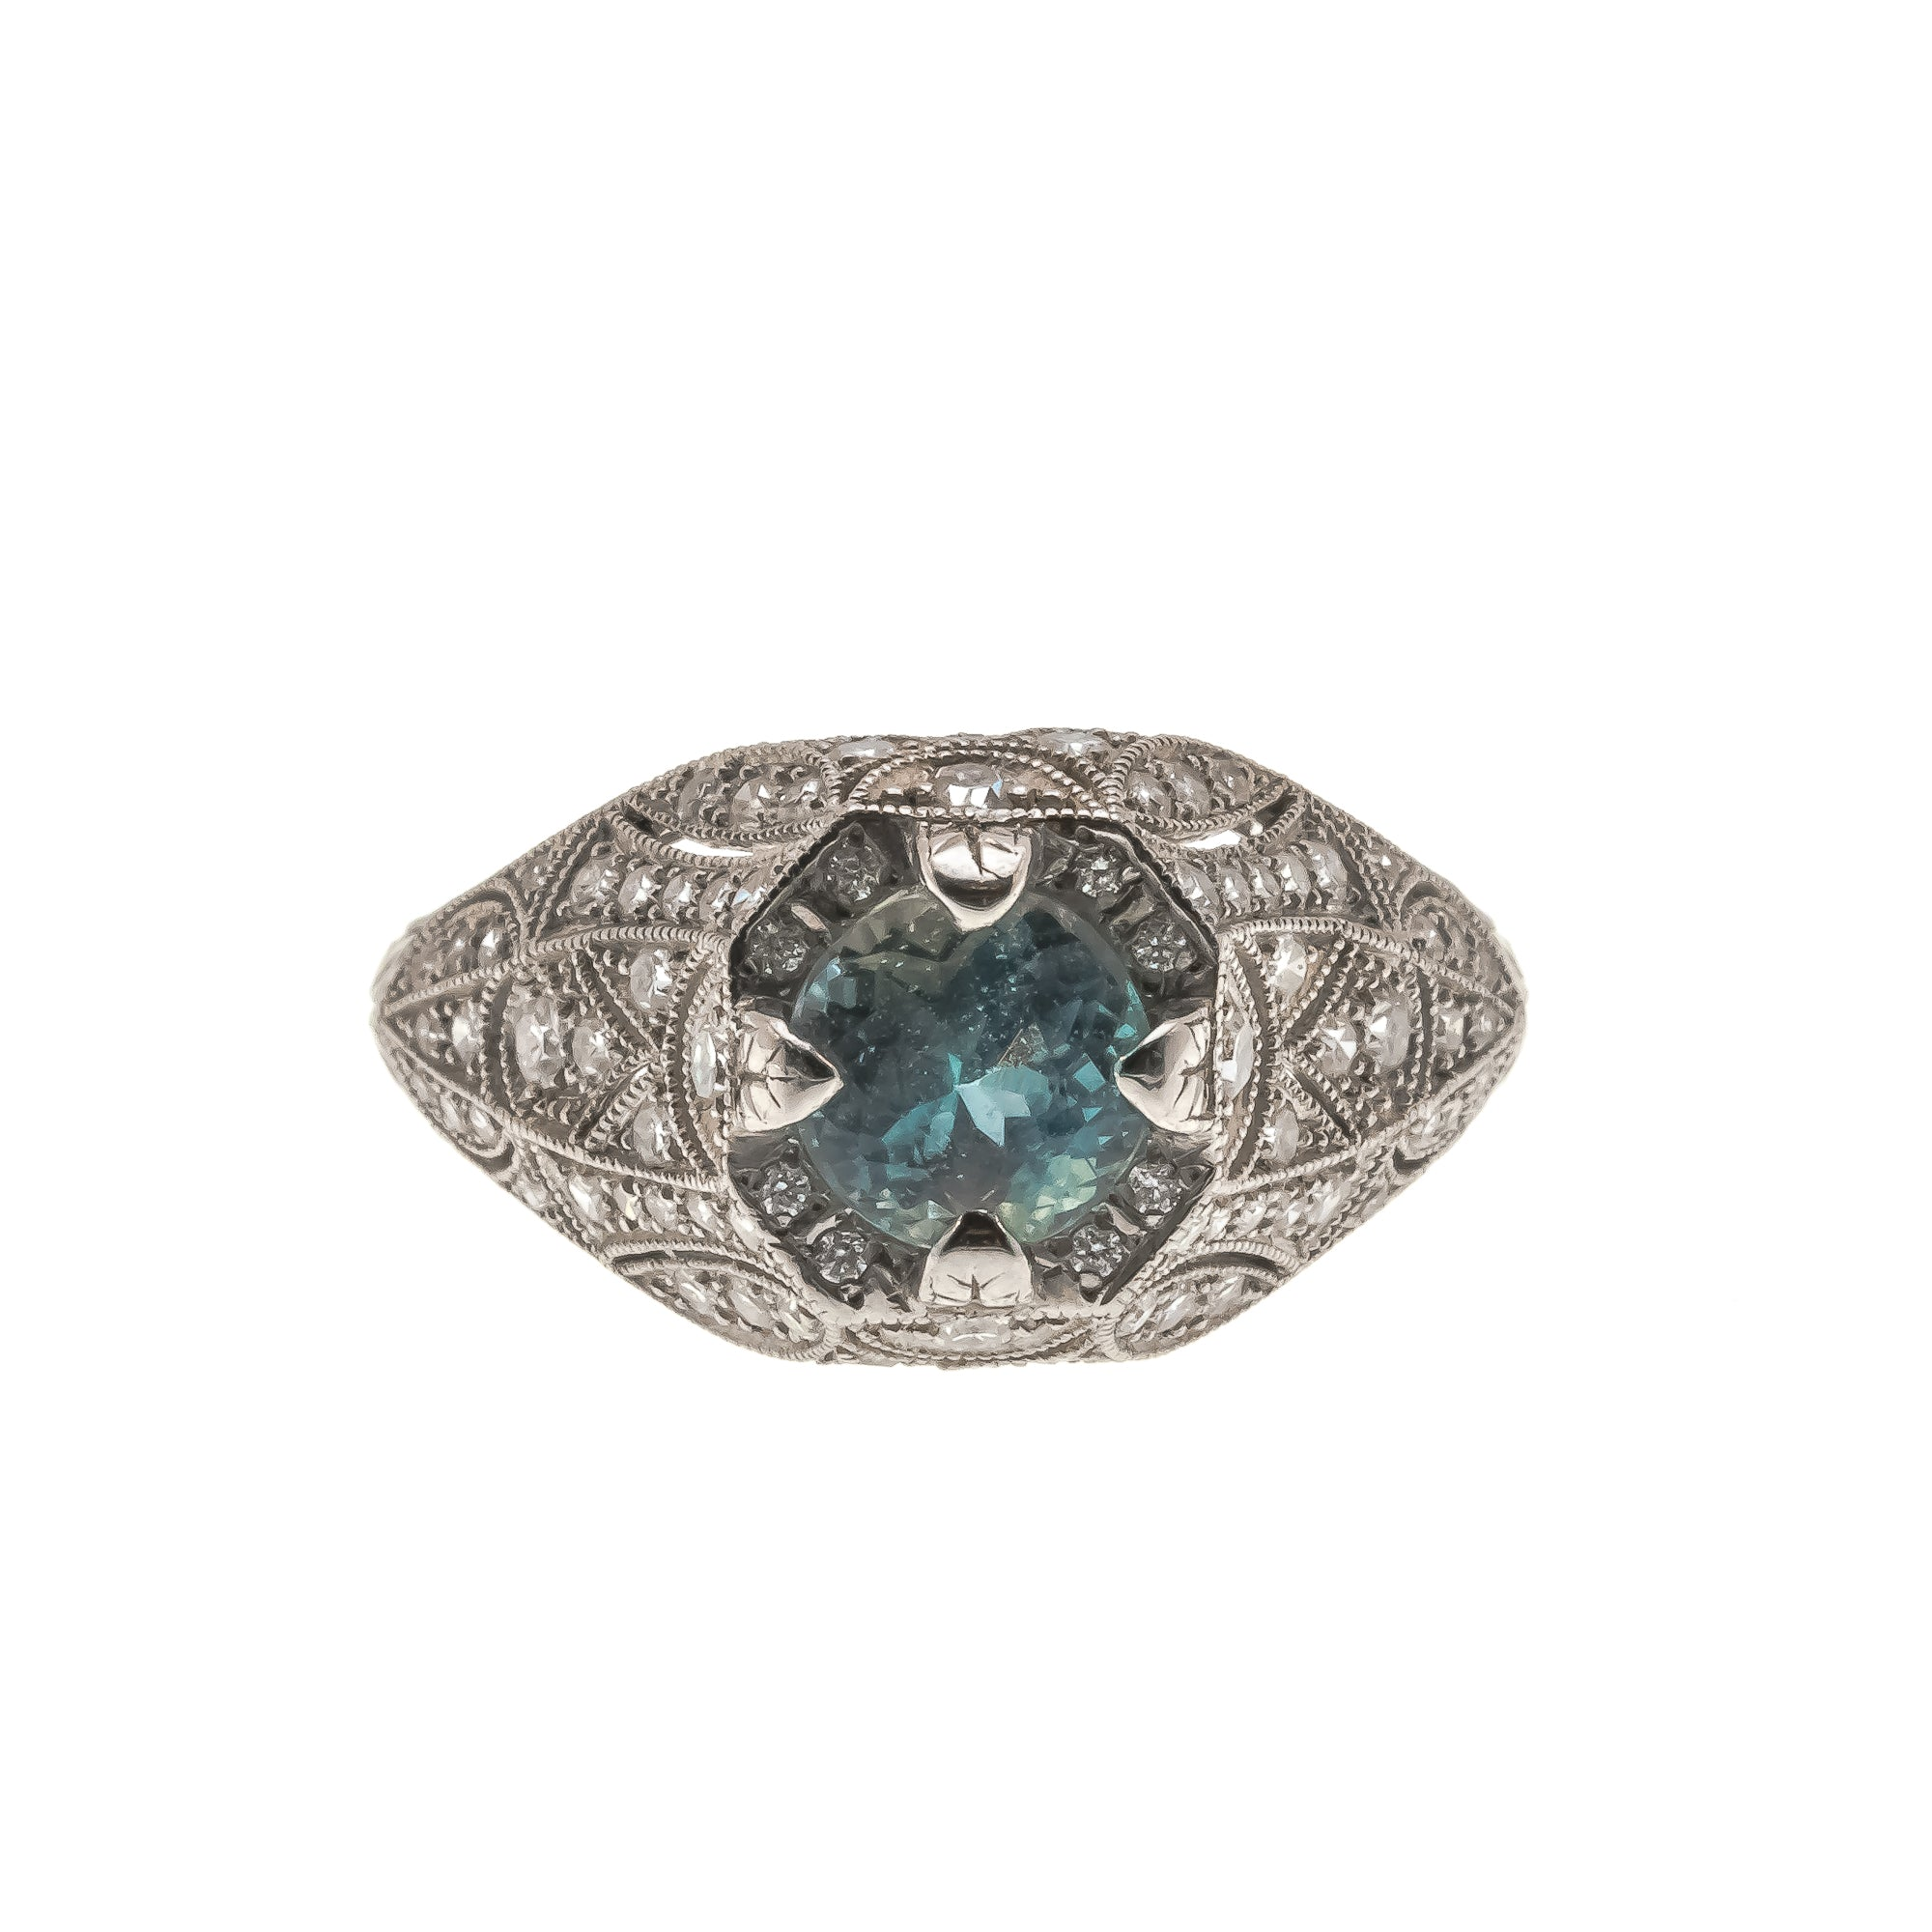 Recently Sold : From Russia With Love - Vintage Platinum Alexandrite Diamond Ring (VR464)